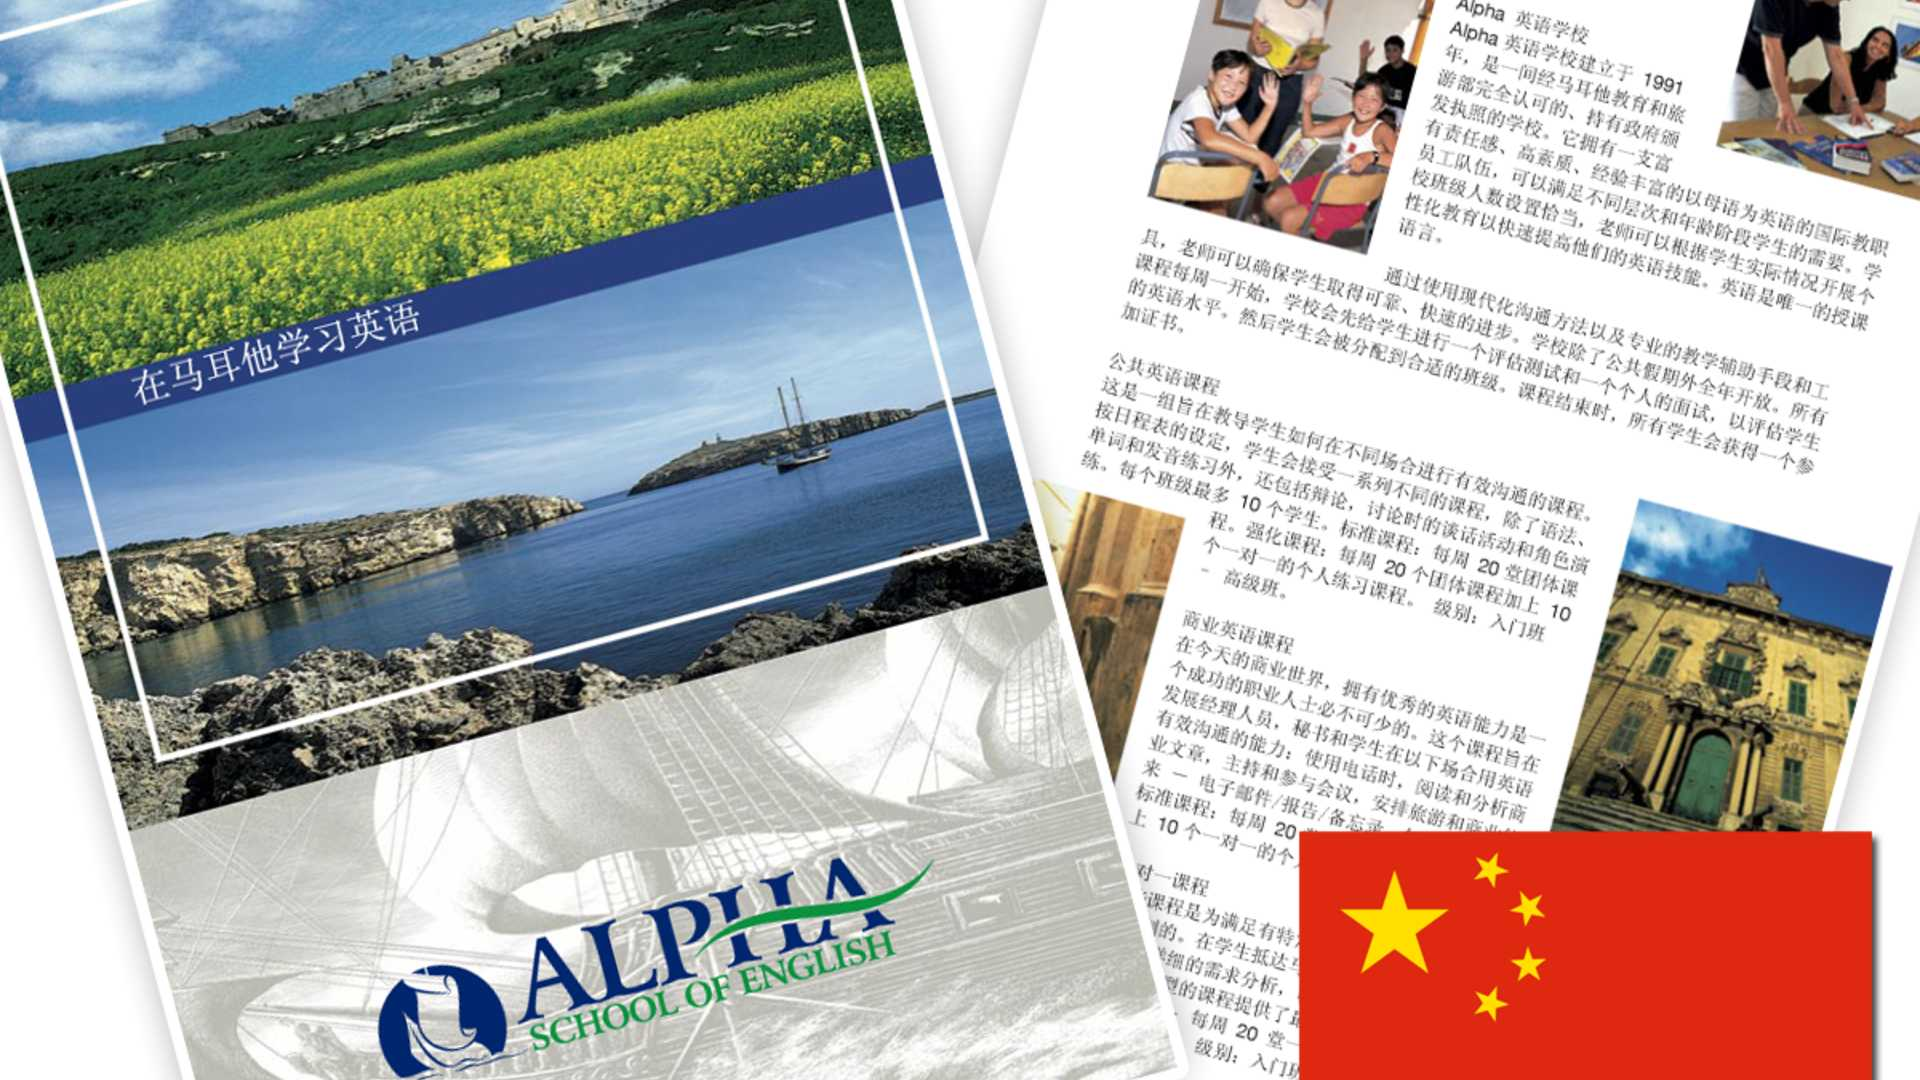 Alpha School of English - General Brochure in Chinese